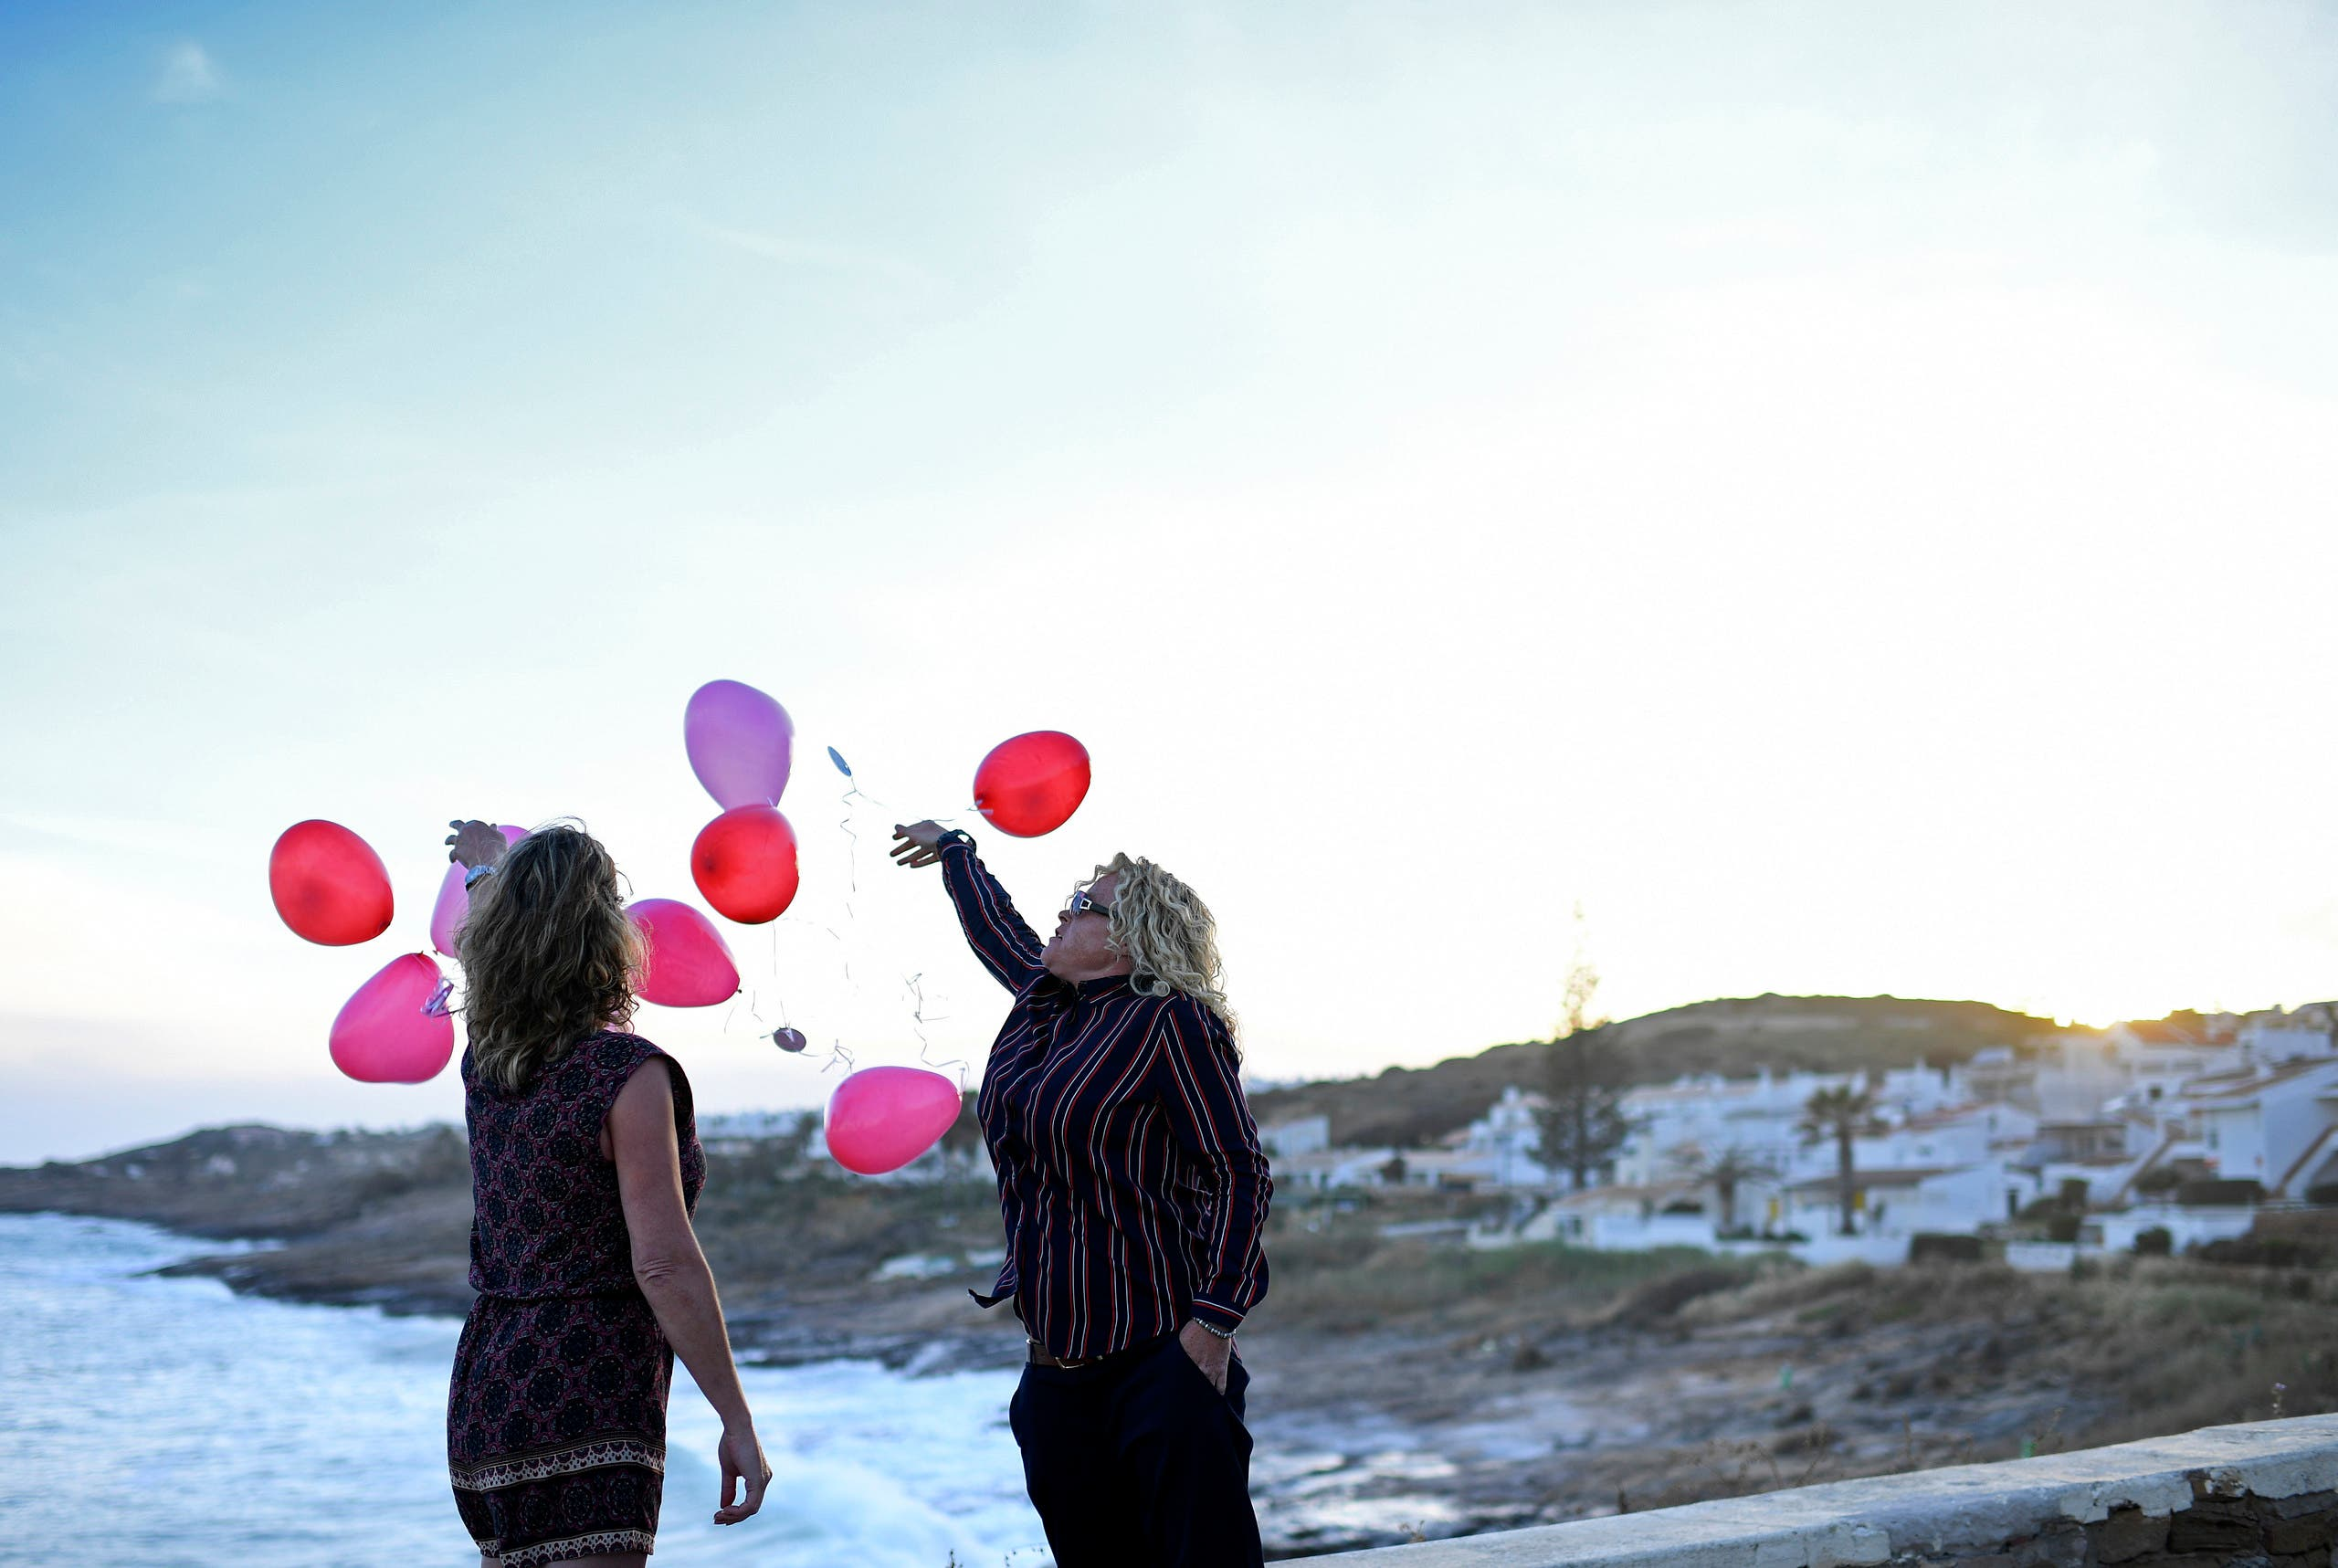 Two people release baloons in Praia da Luz, near Lagos, to mark the 10th anniversary of the dissapearance of British child Madeleine McCann on May 3, 2017. (AFP)